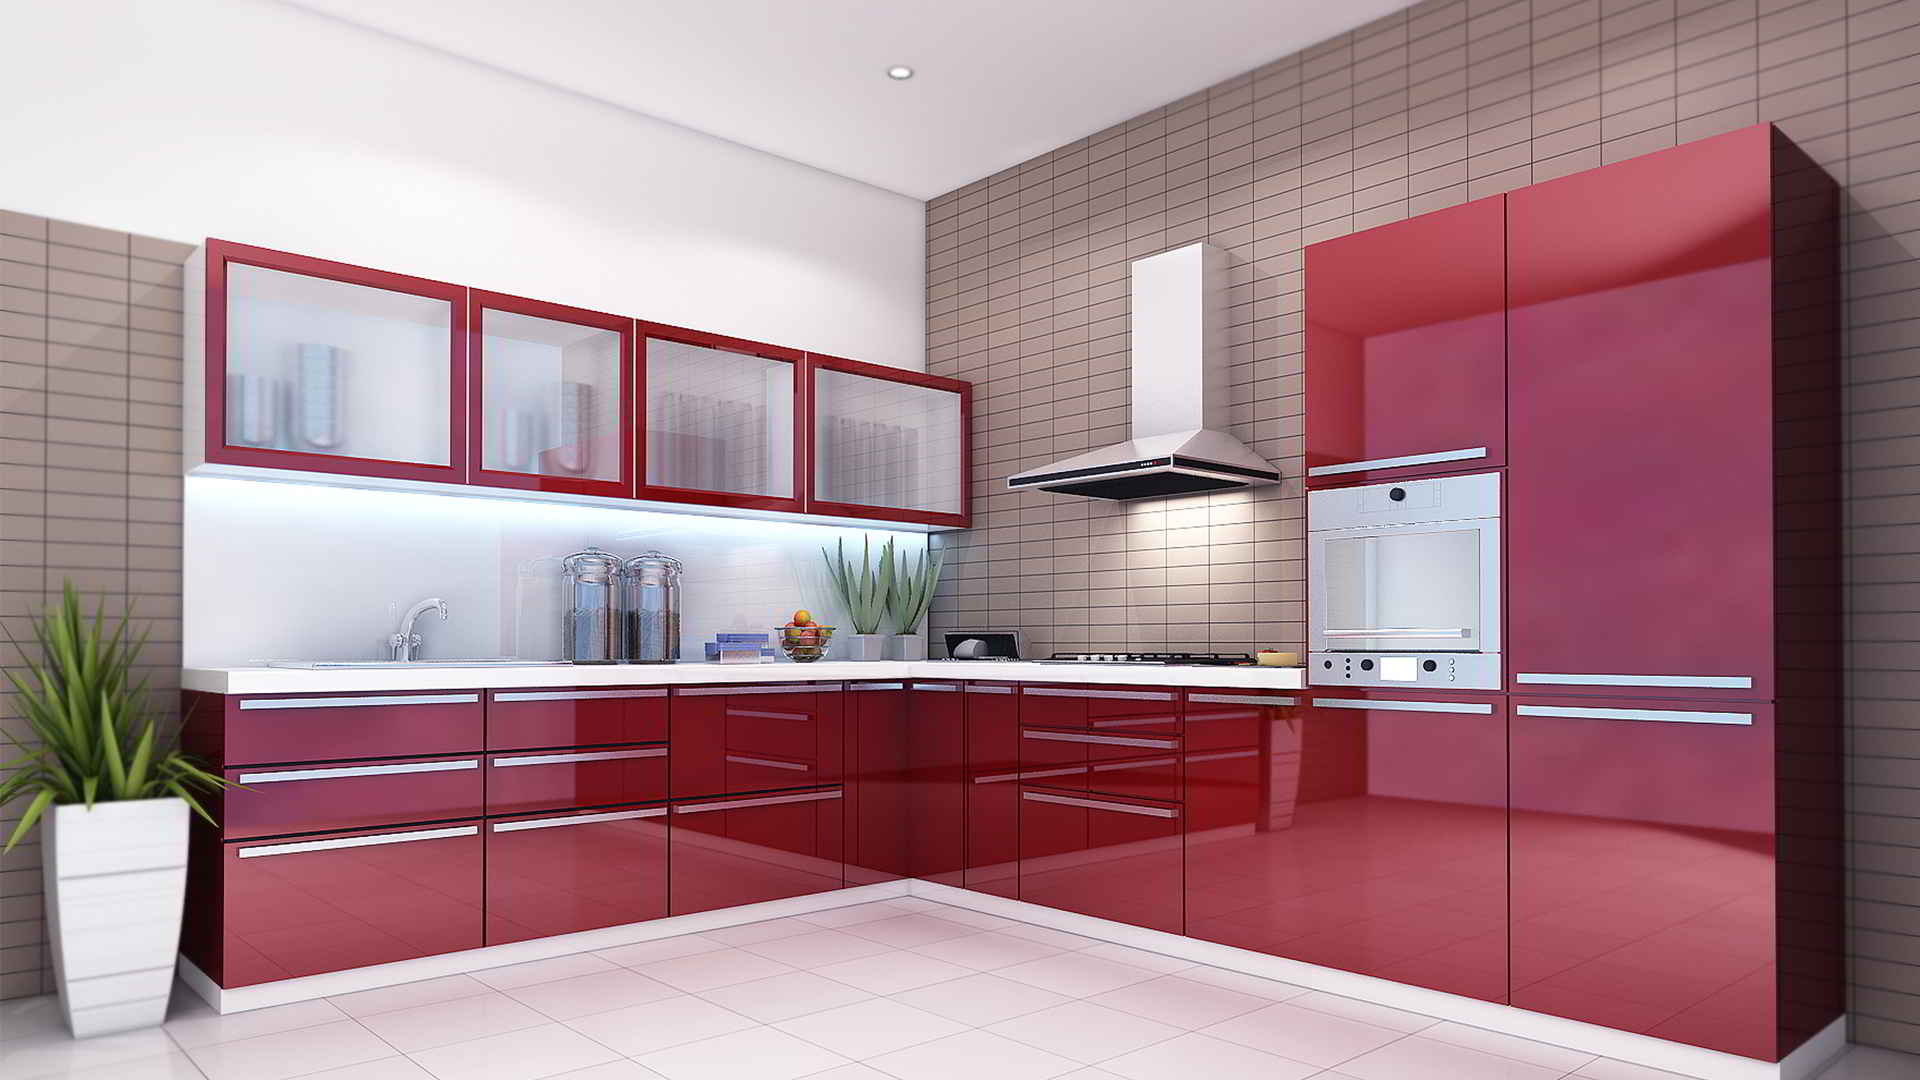 25 latest design ideas of modular kitchen pictures for Modular kitchen cupboard